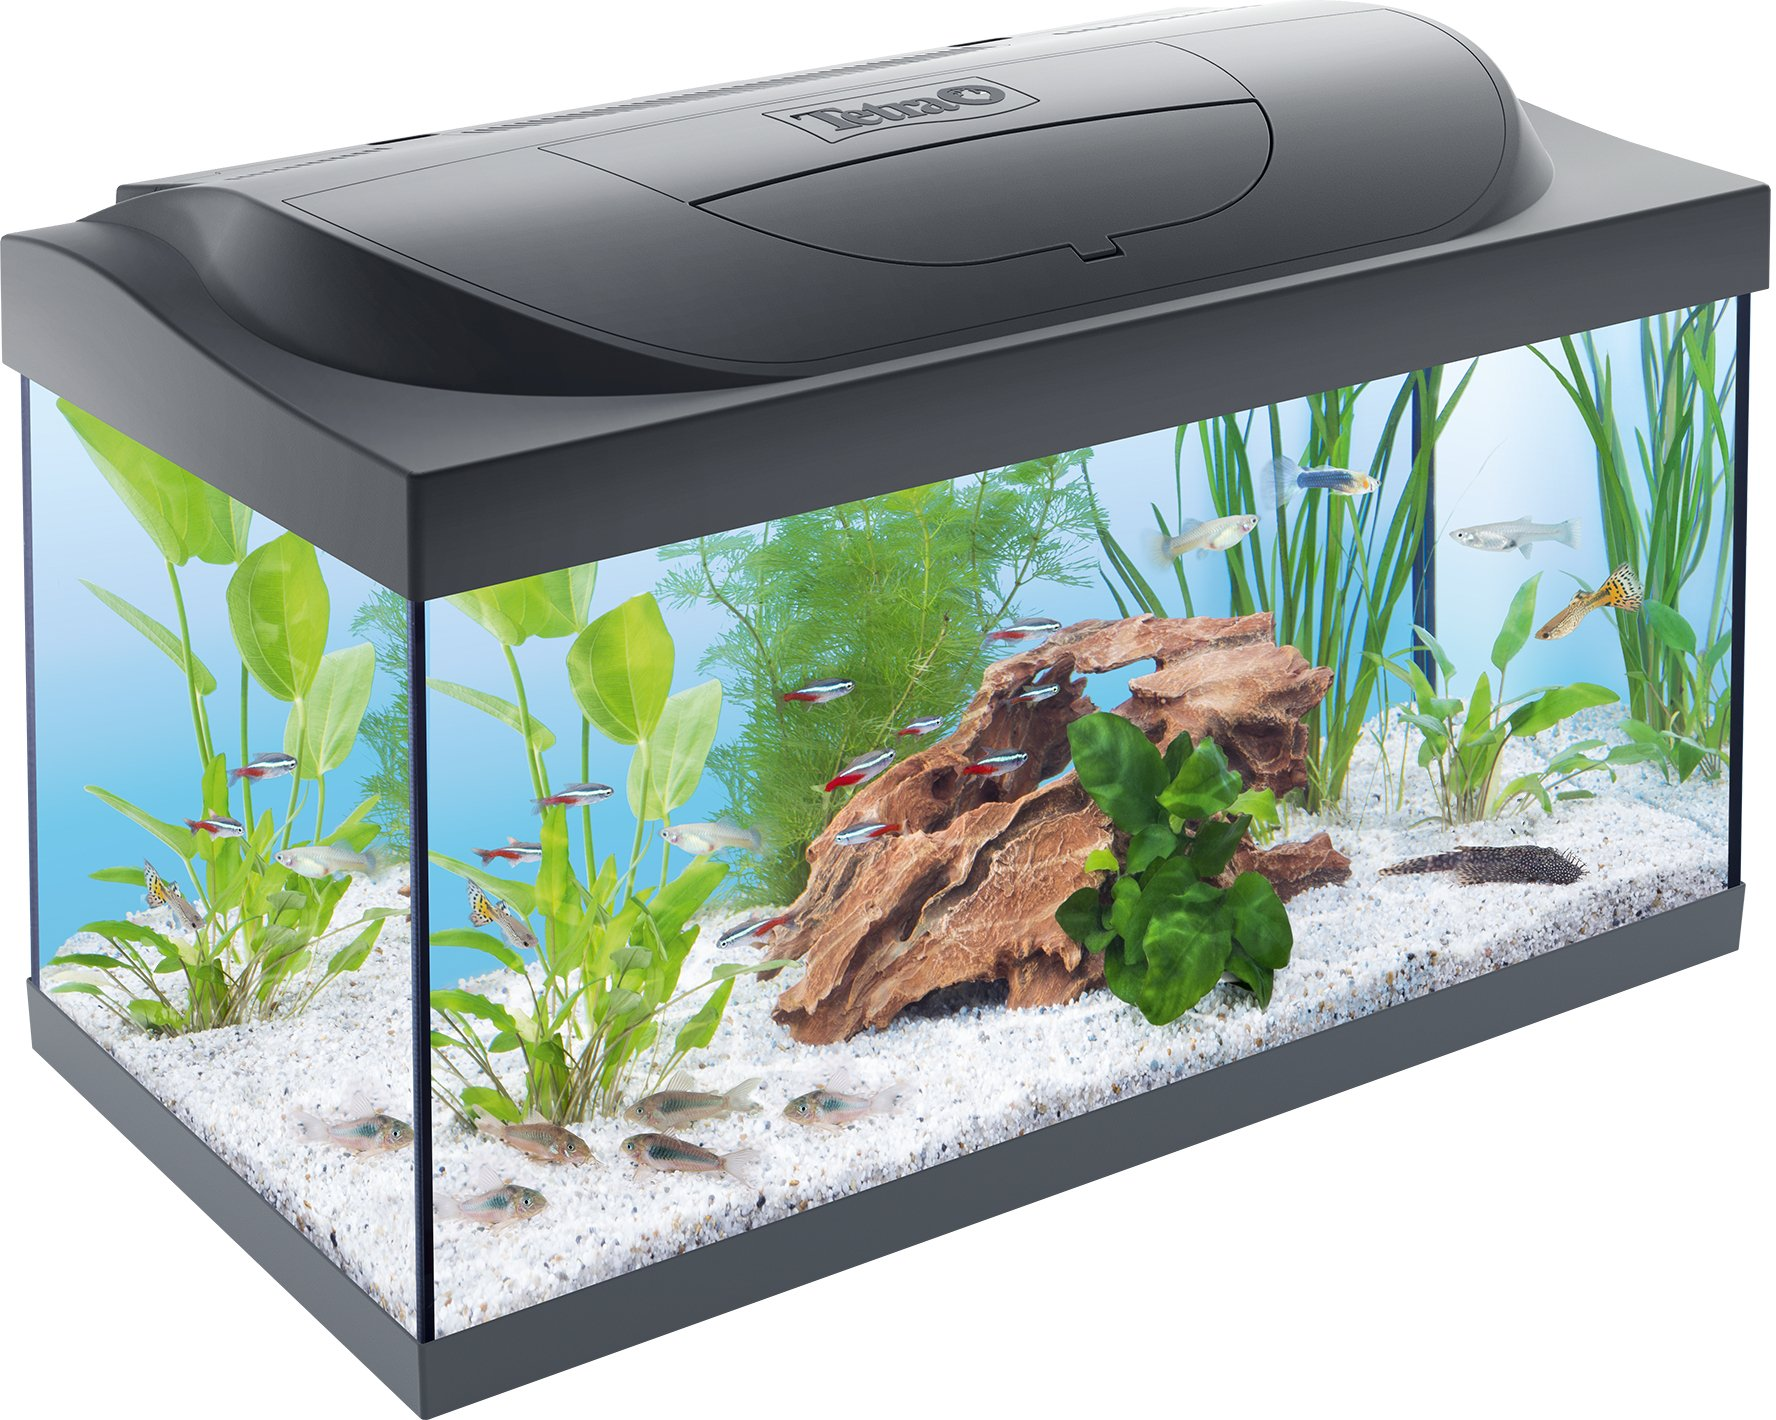 tetra starter line led aquarium kopen frank. Black Bedroom Furniture Sets. Home Design Ideas